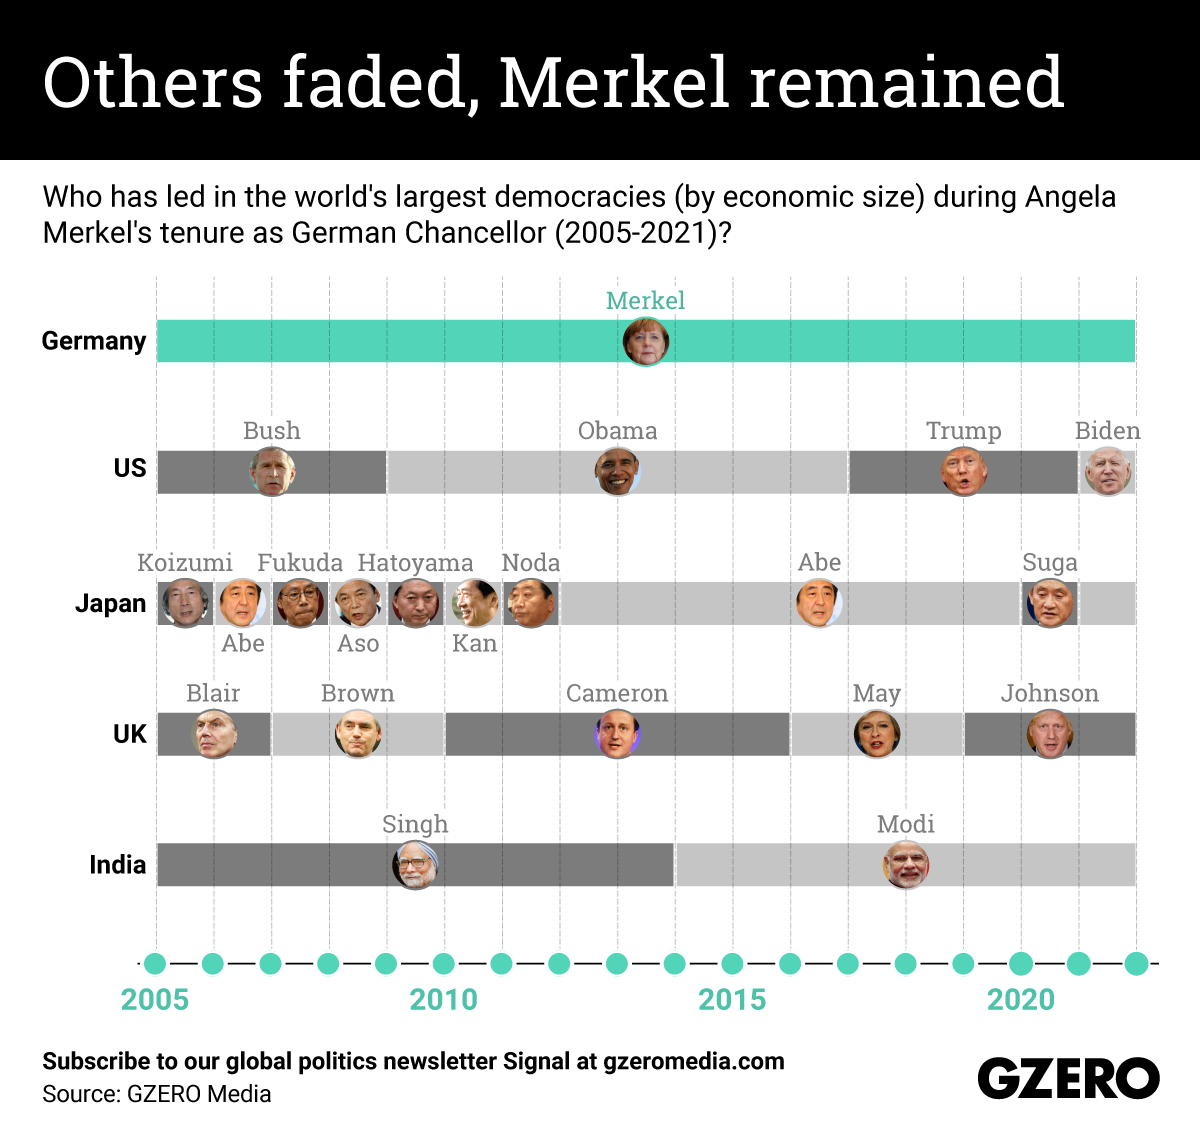 Who has led in the world's largest democracies (by economic size) during Angela Merkel's tenure as German Chancellor (2005-2021)?